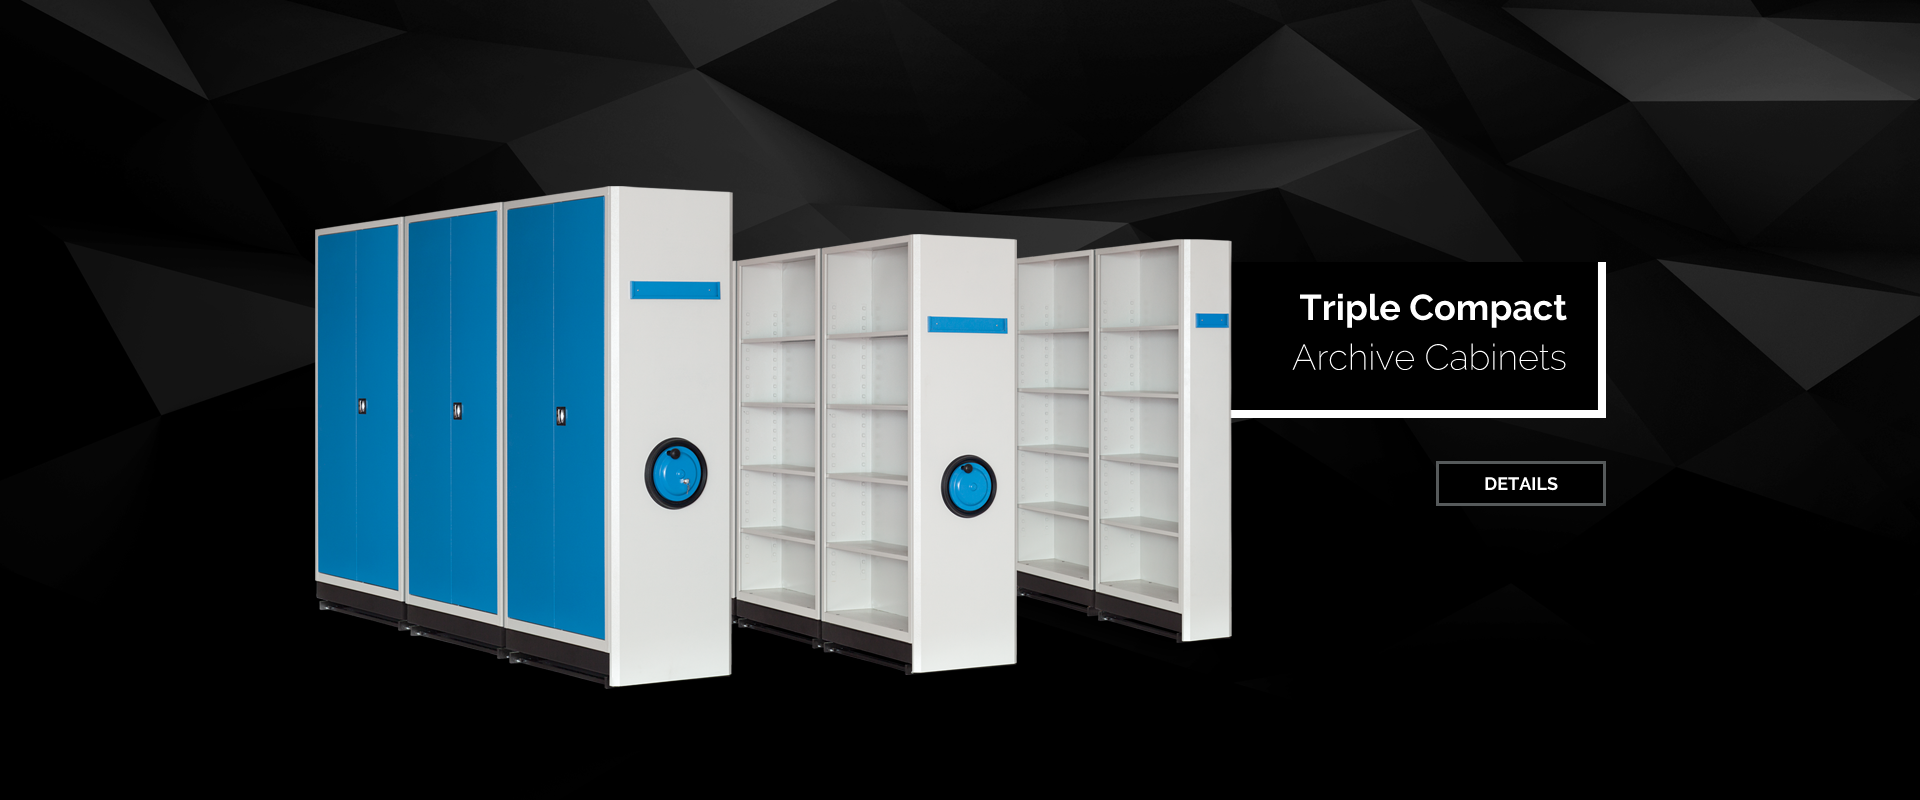 Triple Compact Archive Cabinets